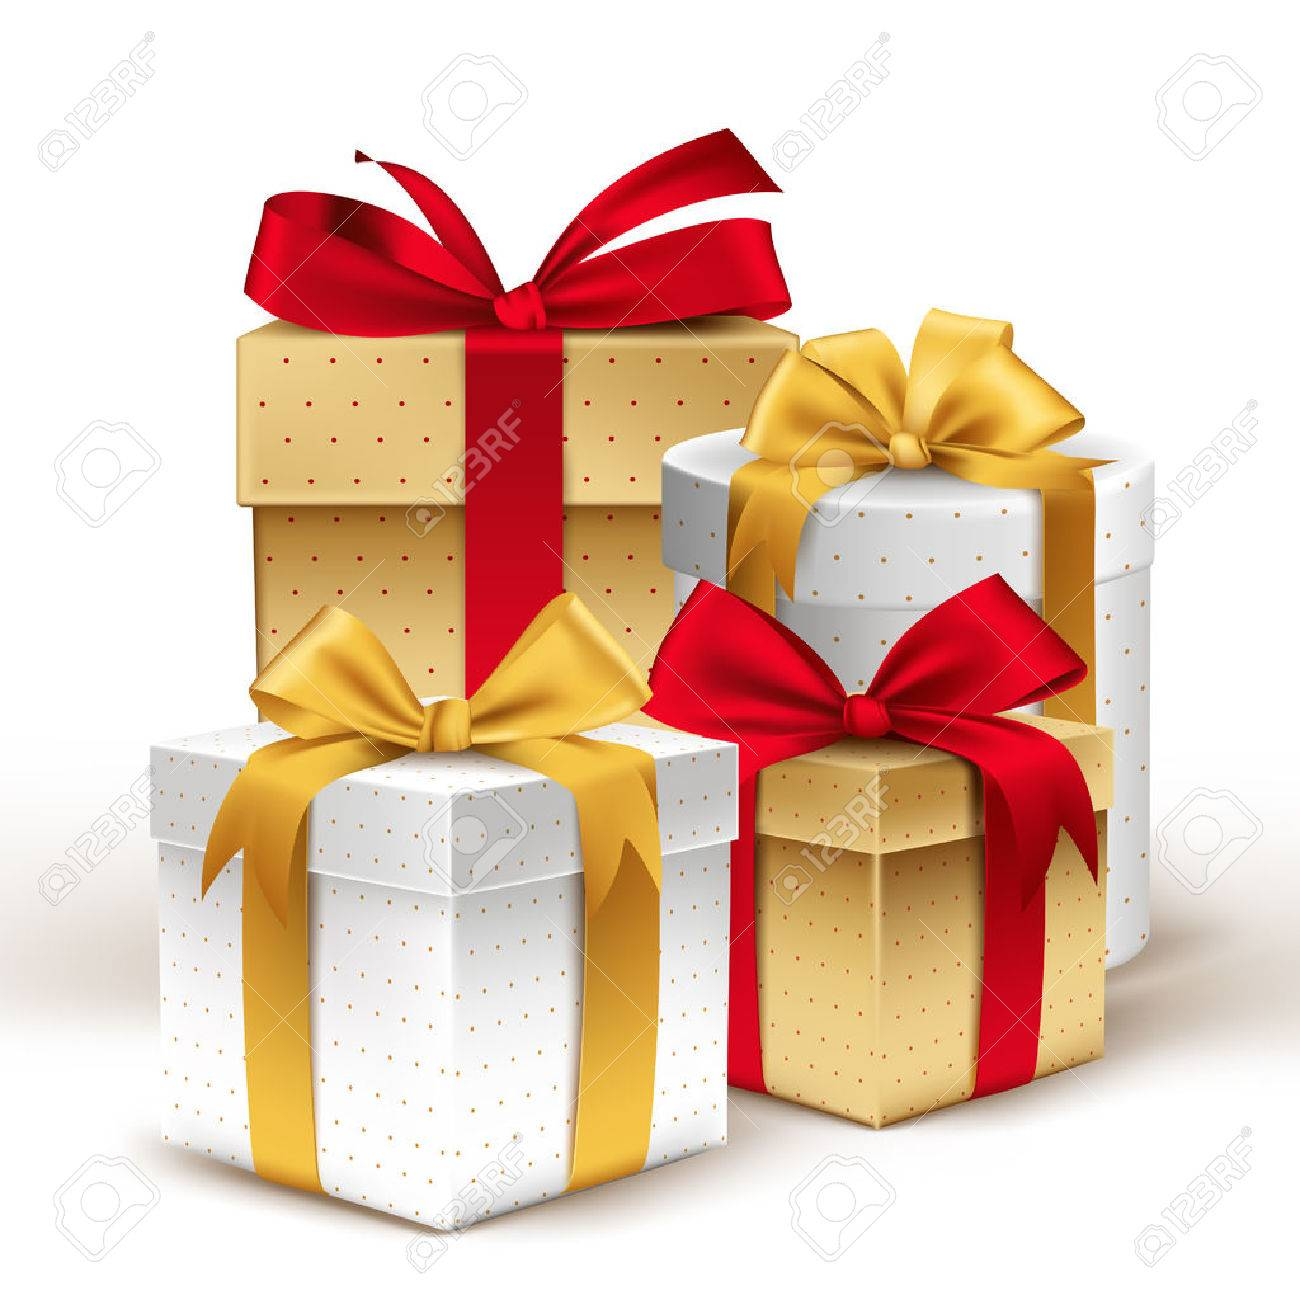 Group of Realistic 3D Colorful Gifts with Colorful Ribbons Wrap with Dotted Pattern for Birthday or Christmas Celebration in White Background. Editable Vector Illustration. - 41289671